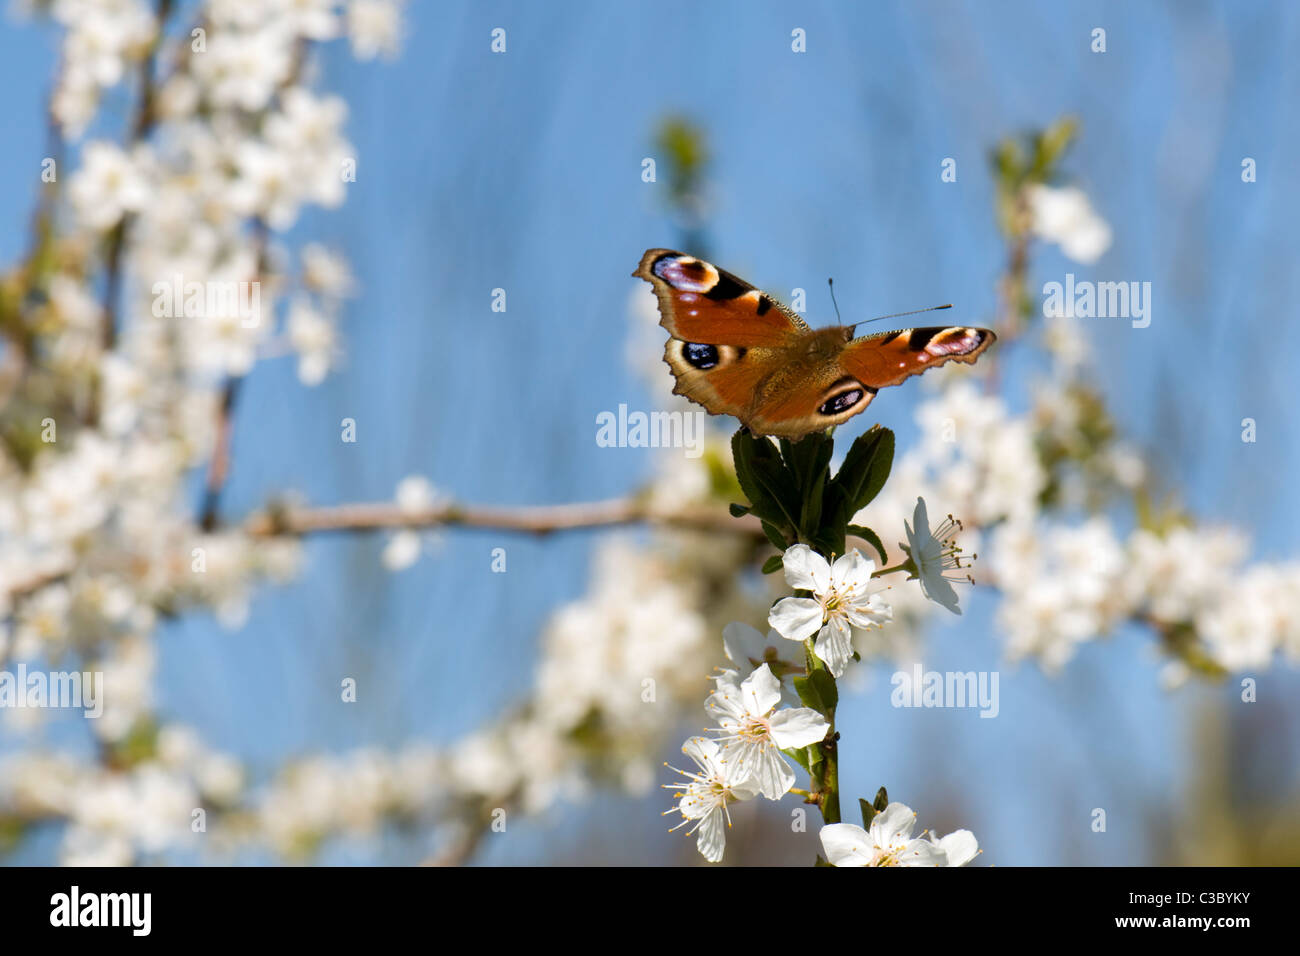 Peacock butterfly with wings open on blossom tree on sunny bright day - Stock Image